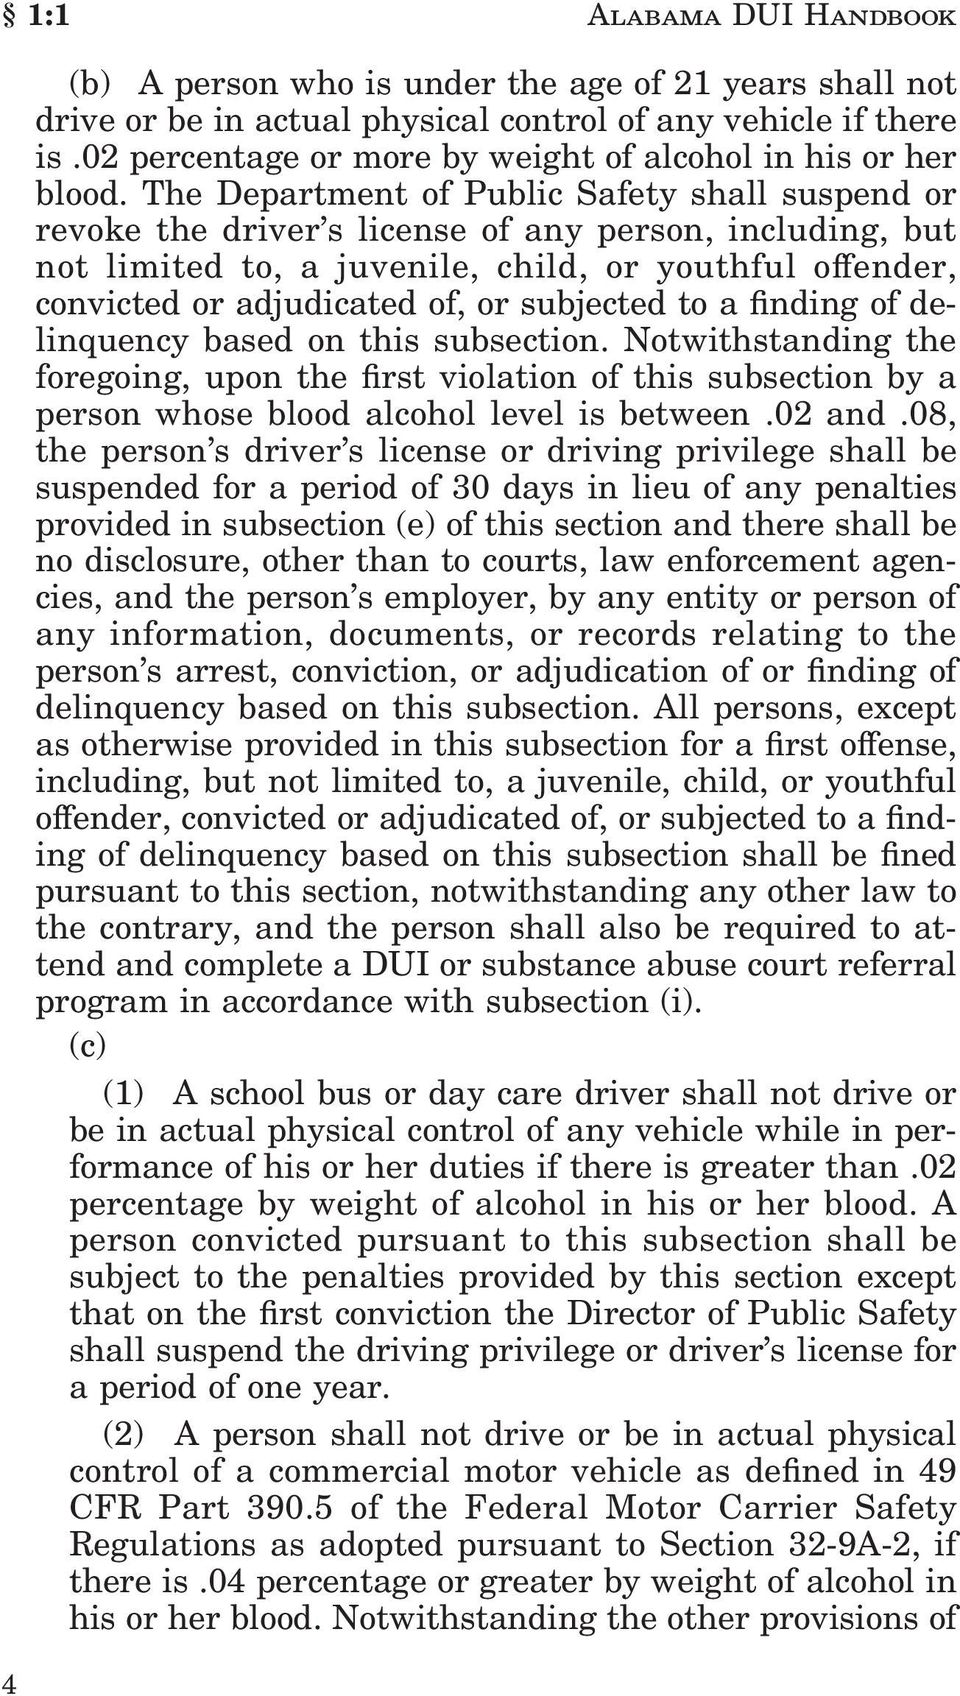 The Department of Public Safety shall suspend or revoke the driver's license of any person, including, but not limited to, a juvenile, child, or youthful o ender, convicted or adjudicated of, or